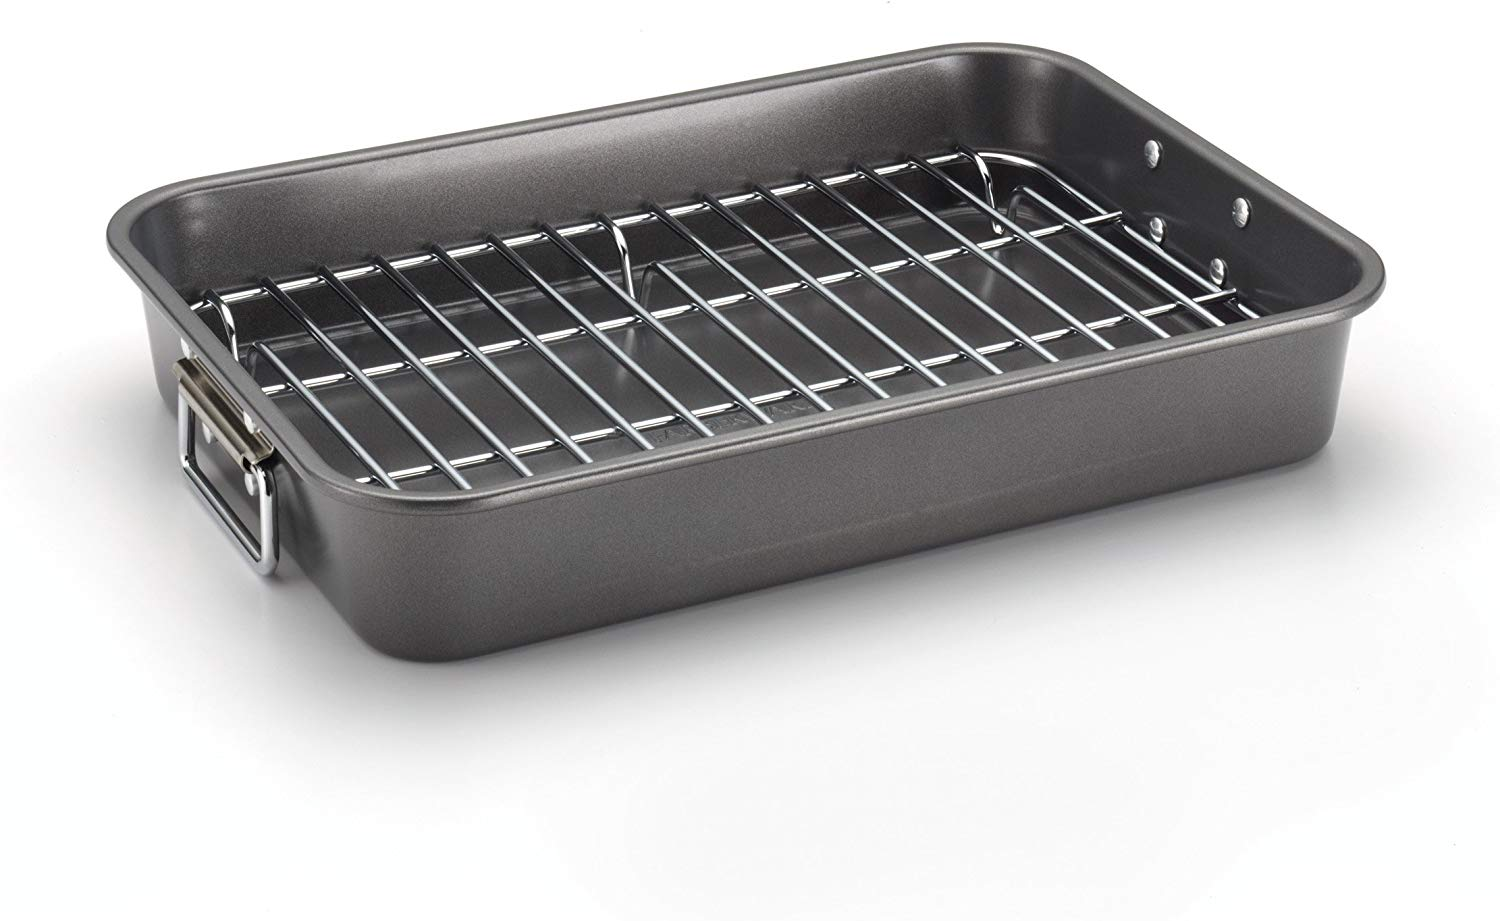 Farberware Nonstick Bakeware 11-Inch x 15-Inch Roaster with Flat Rack, Gray